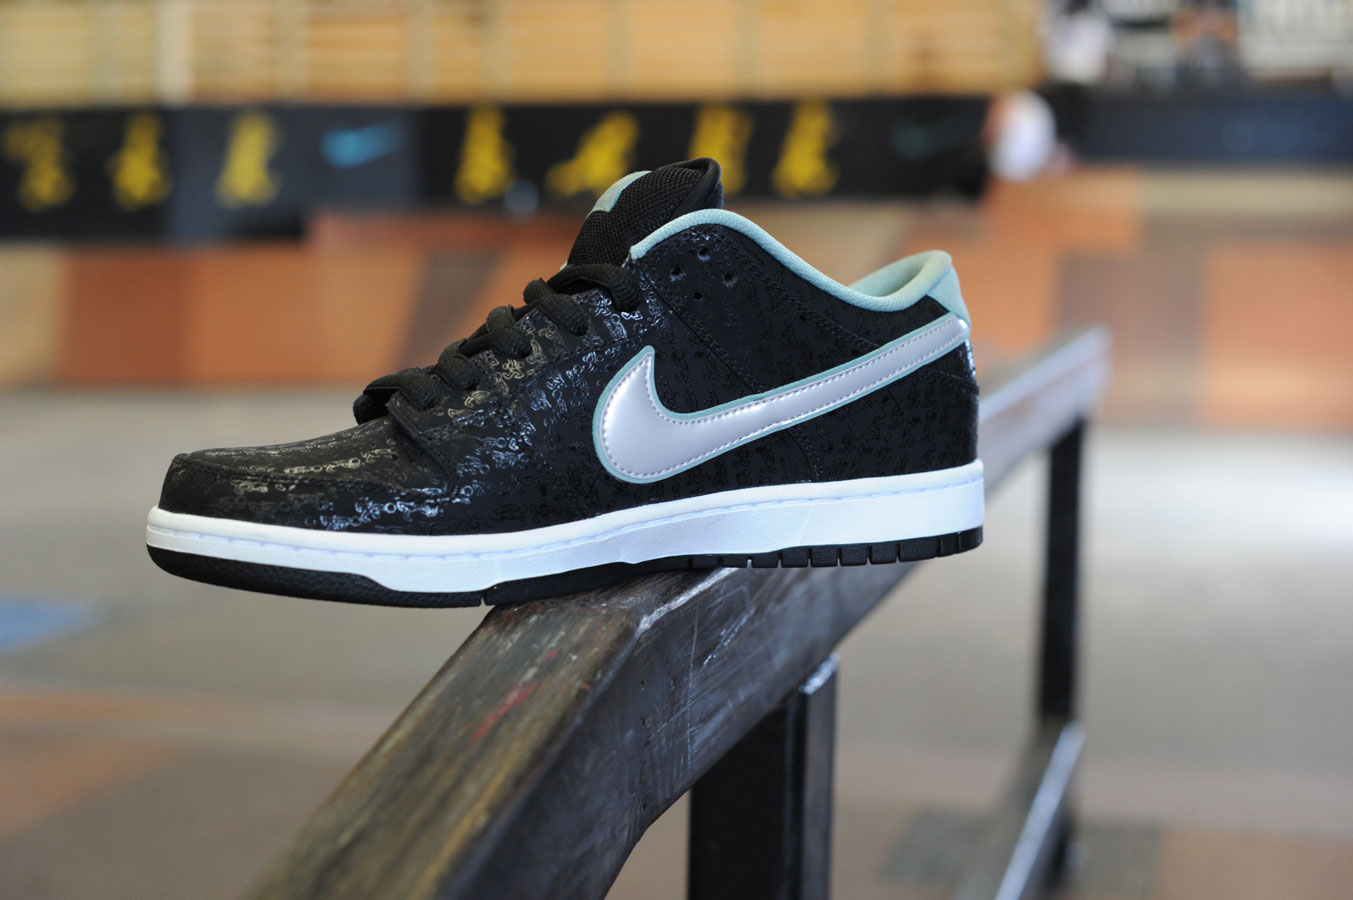 timeless design 427c8 cdee2 SPoT X Lance Mountain 20 Year Dunk Low Shoe Review Article at ...